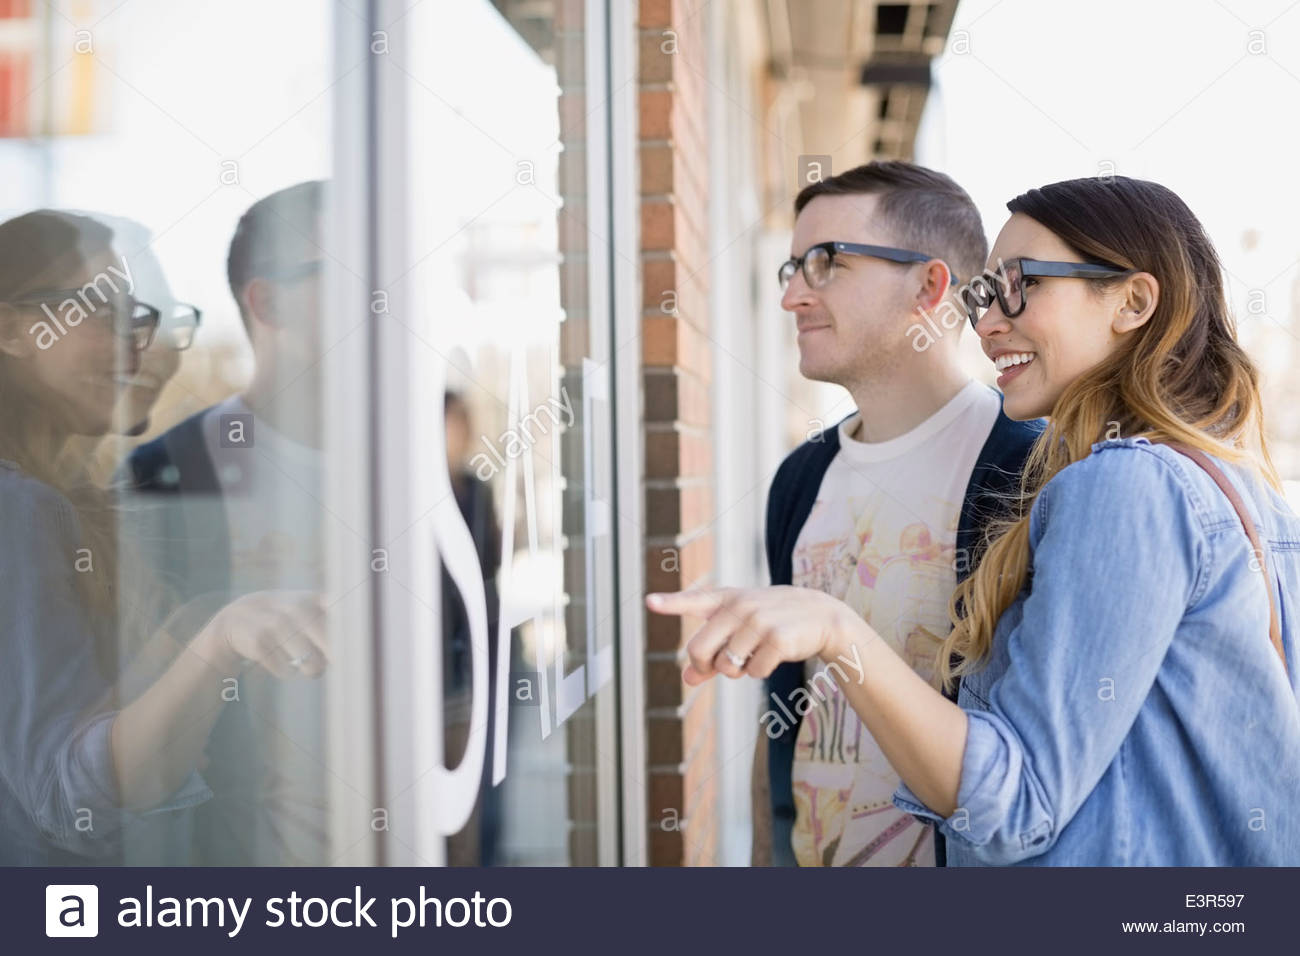 f7bbe35e099 Hipster Glasses Stock Photos   Hipster Glasses Stock Images - Alamy